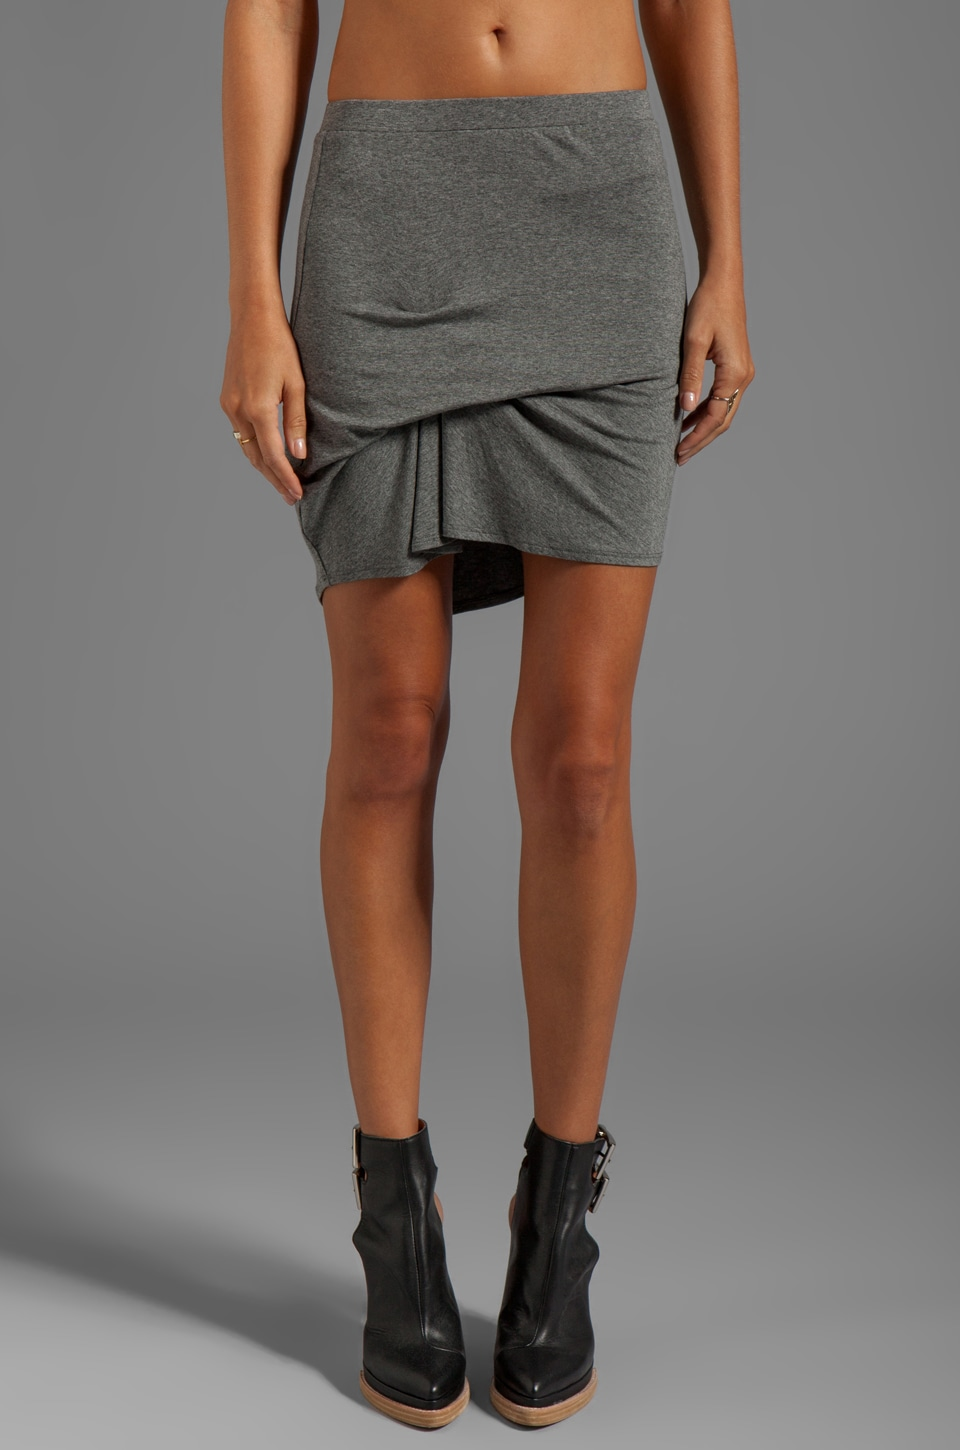 Riller & Fount Bill Pinched Front Mini Skirt in Heather Ash